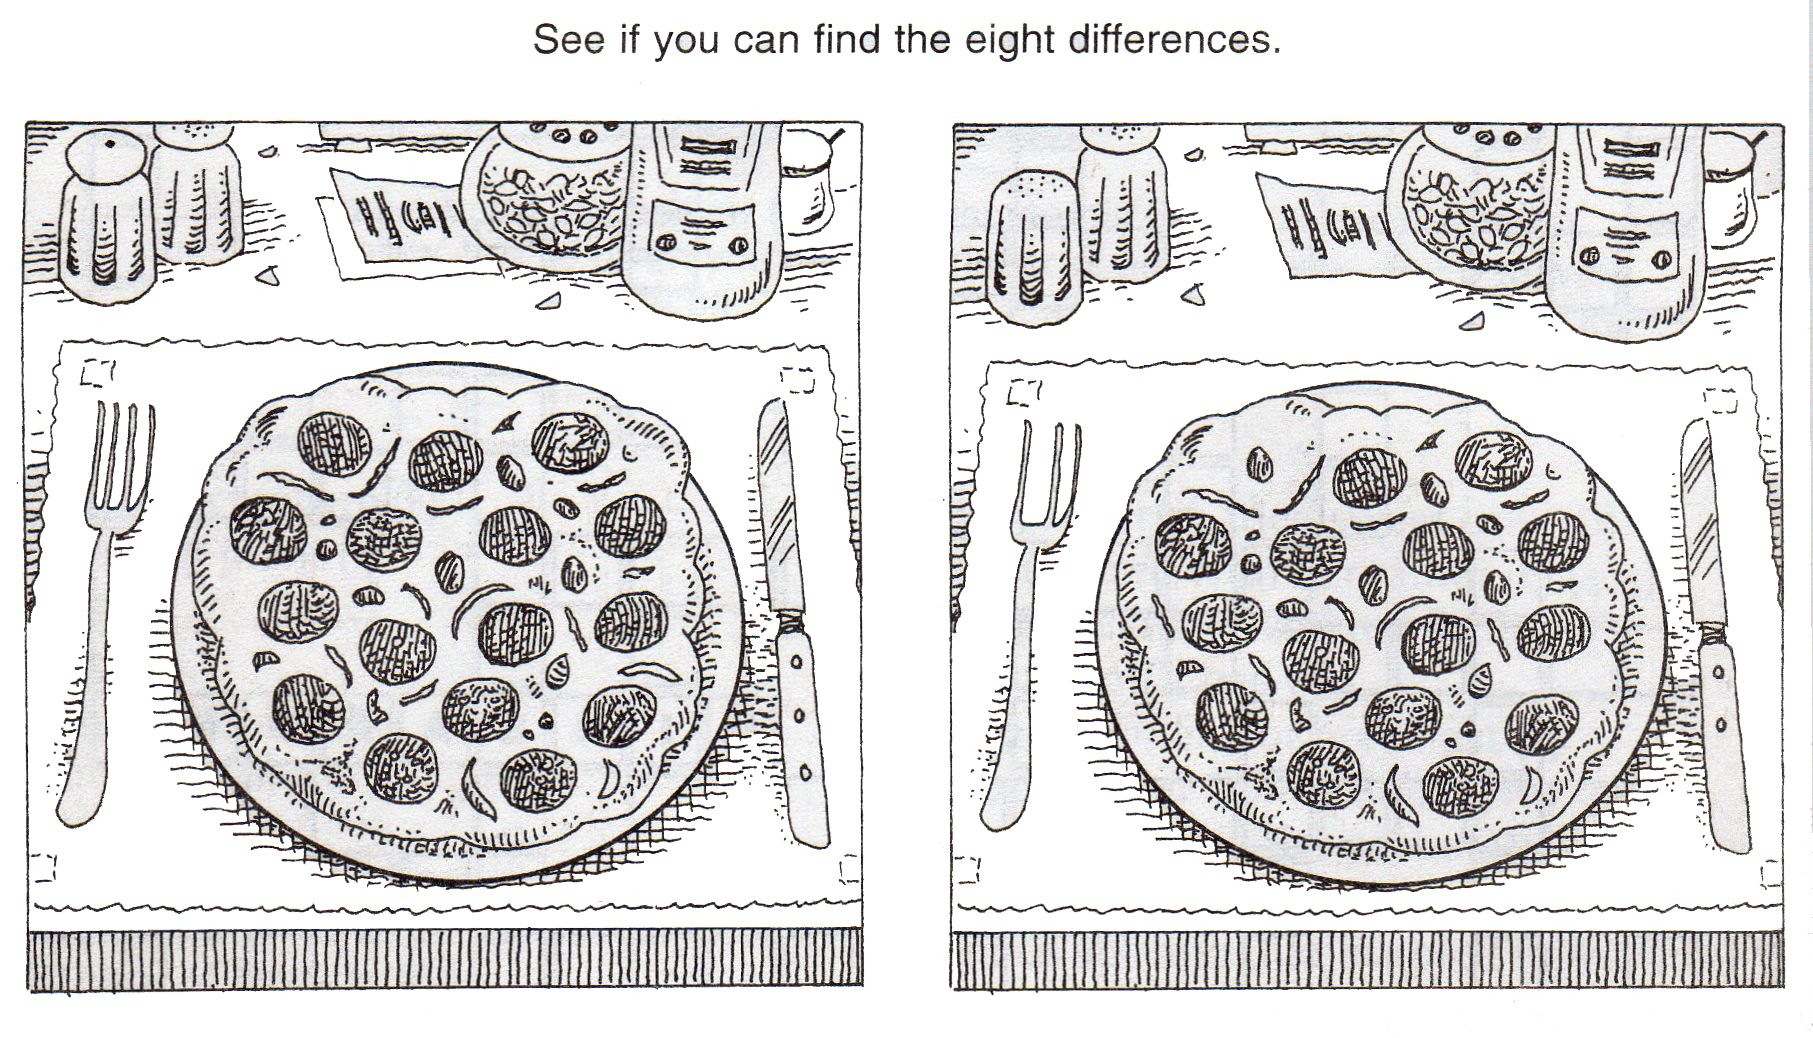 Free+Printable+Spot+The+Difference+Puzzles | Hg | Pinterest | Spot - Free Printable Spot The Difference Worksheets